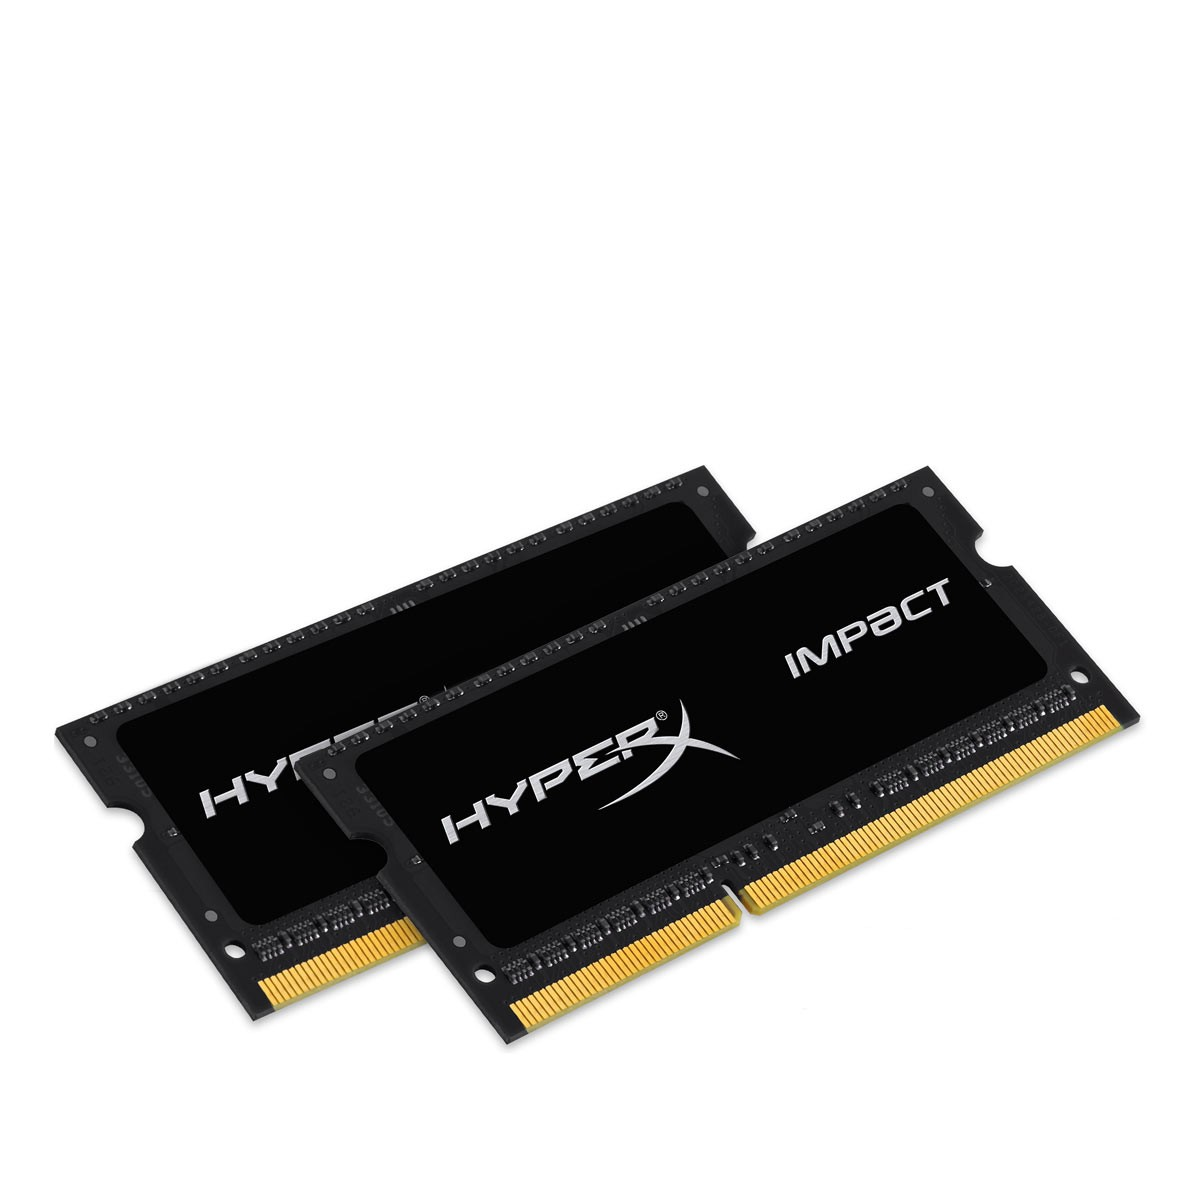 Kingston - HyperX Impact 16GB 1866MHz DDR3 - SODIMM CL11 2x8GB memória modul